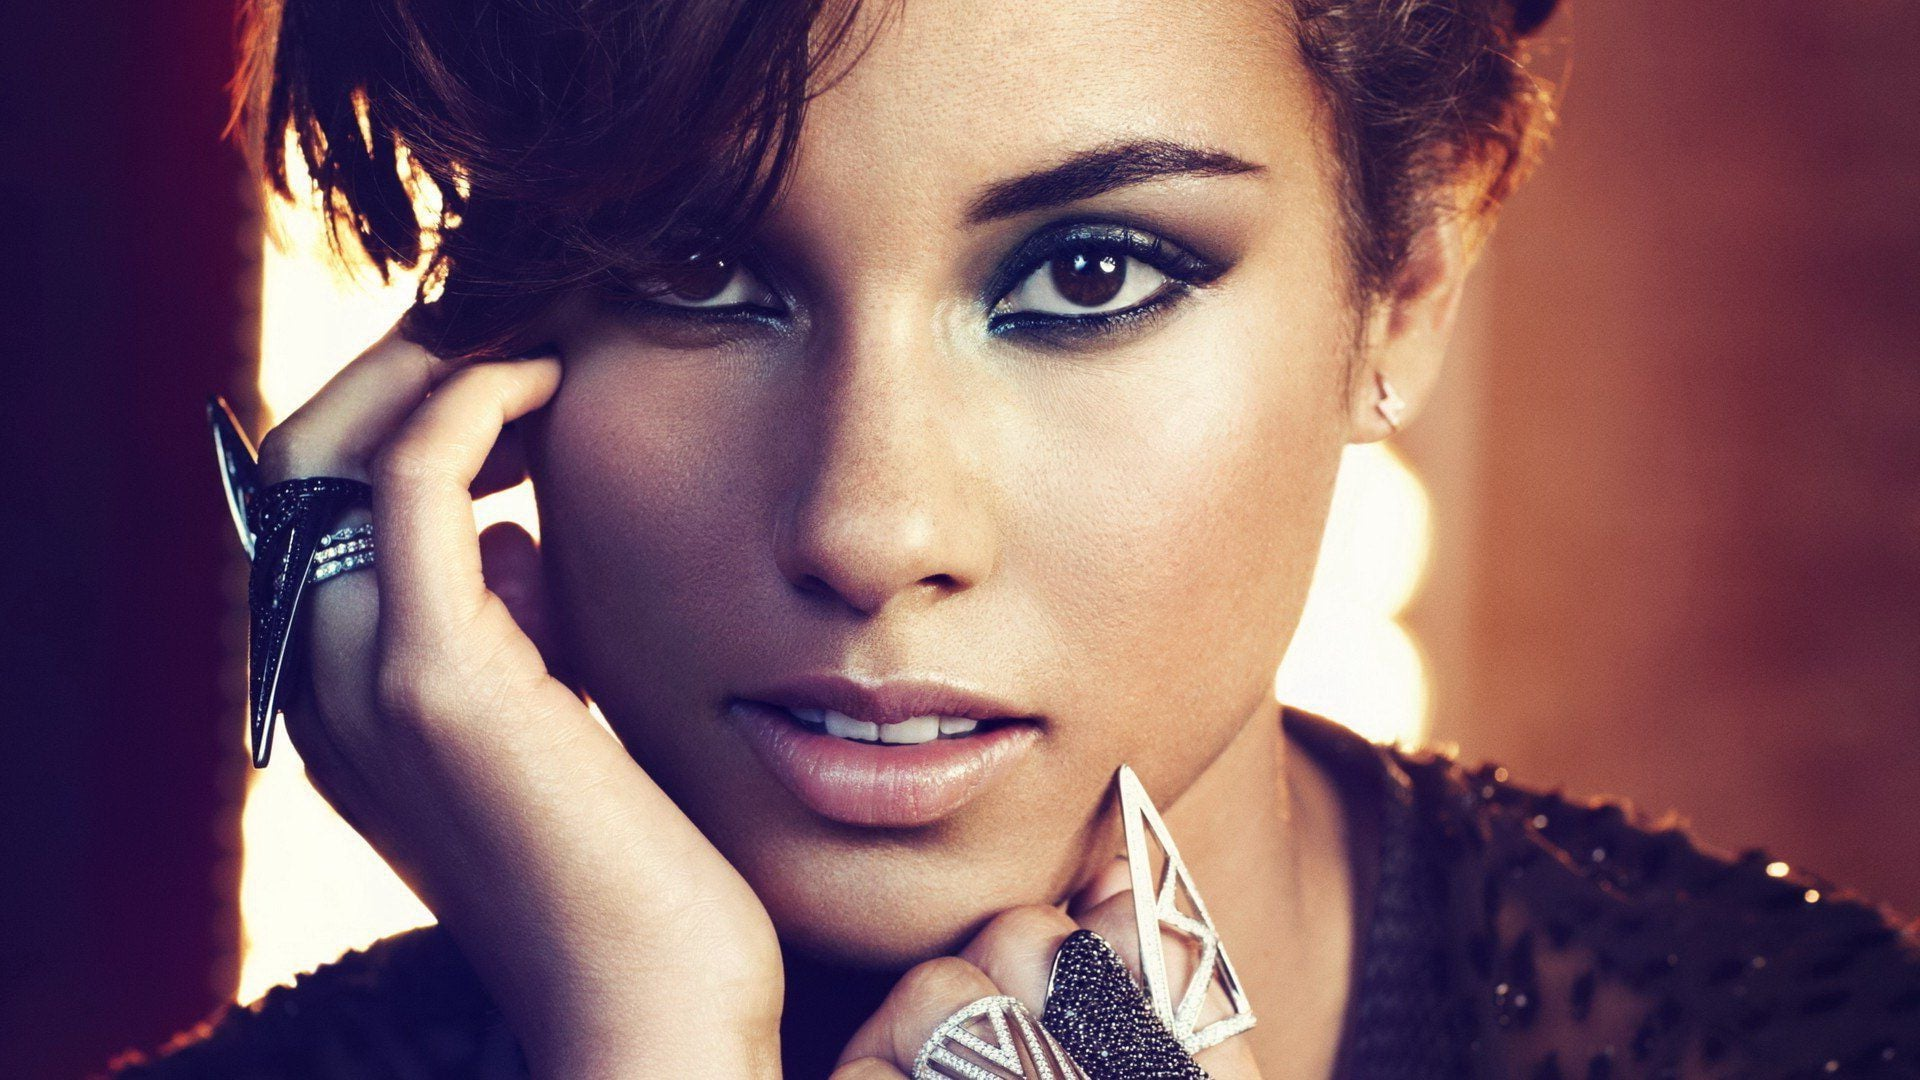 Cool Wallpapers Hd 31 Alicia Keys Wallpapers Hd Download